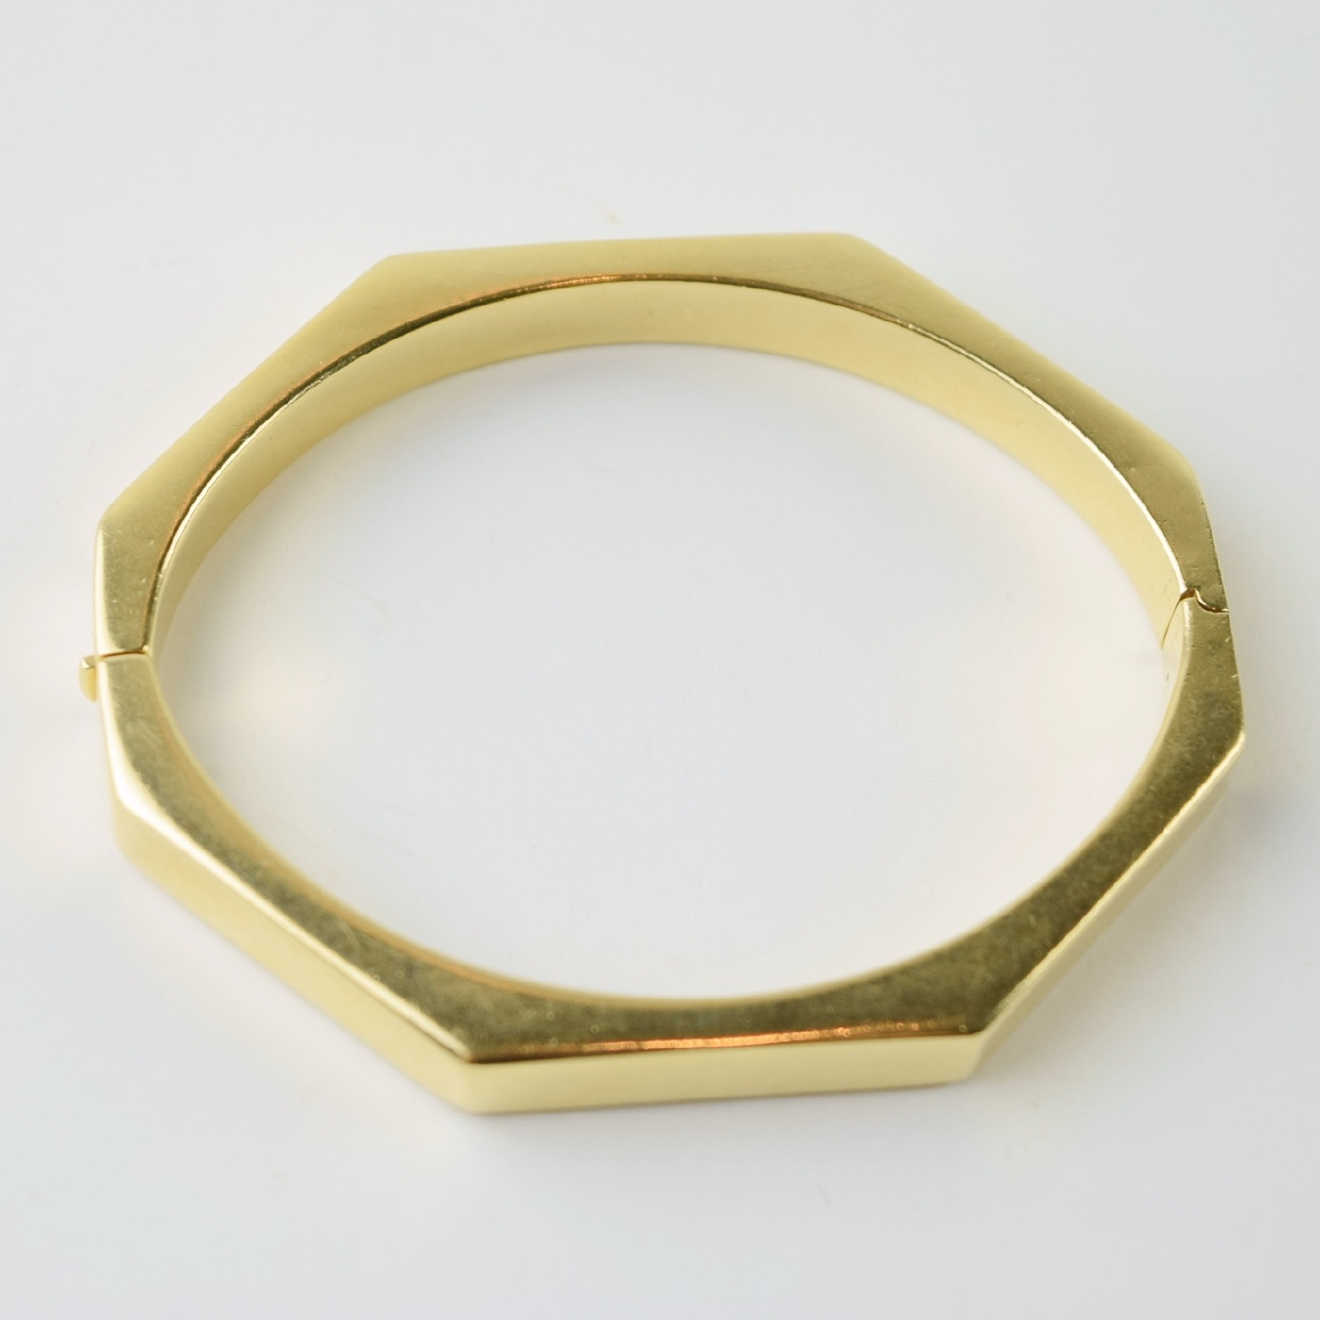 14K Gold Eight Sided Bracelet / Image courtesy of Everything But The House // Published: 10.15.16